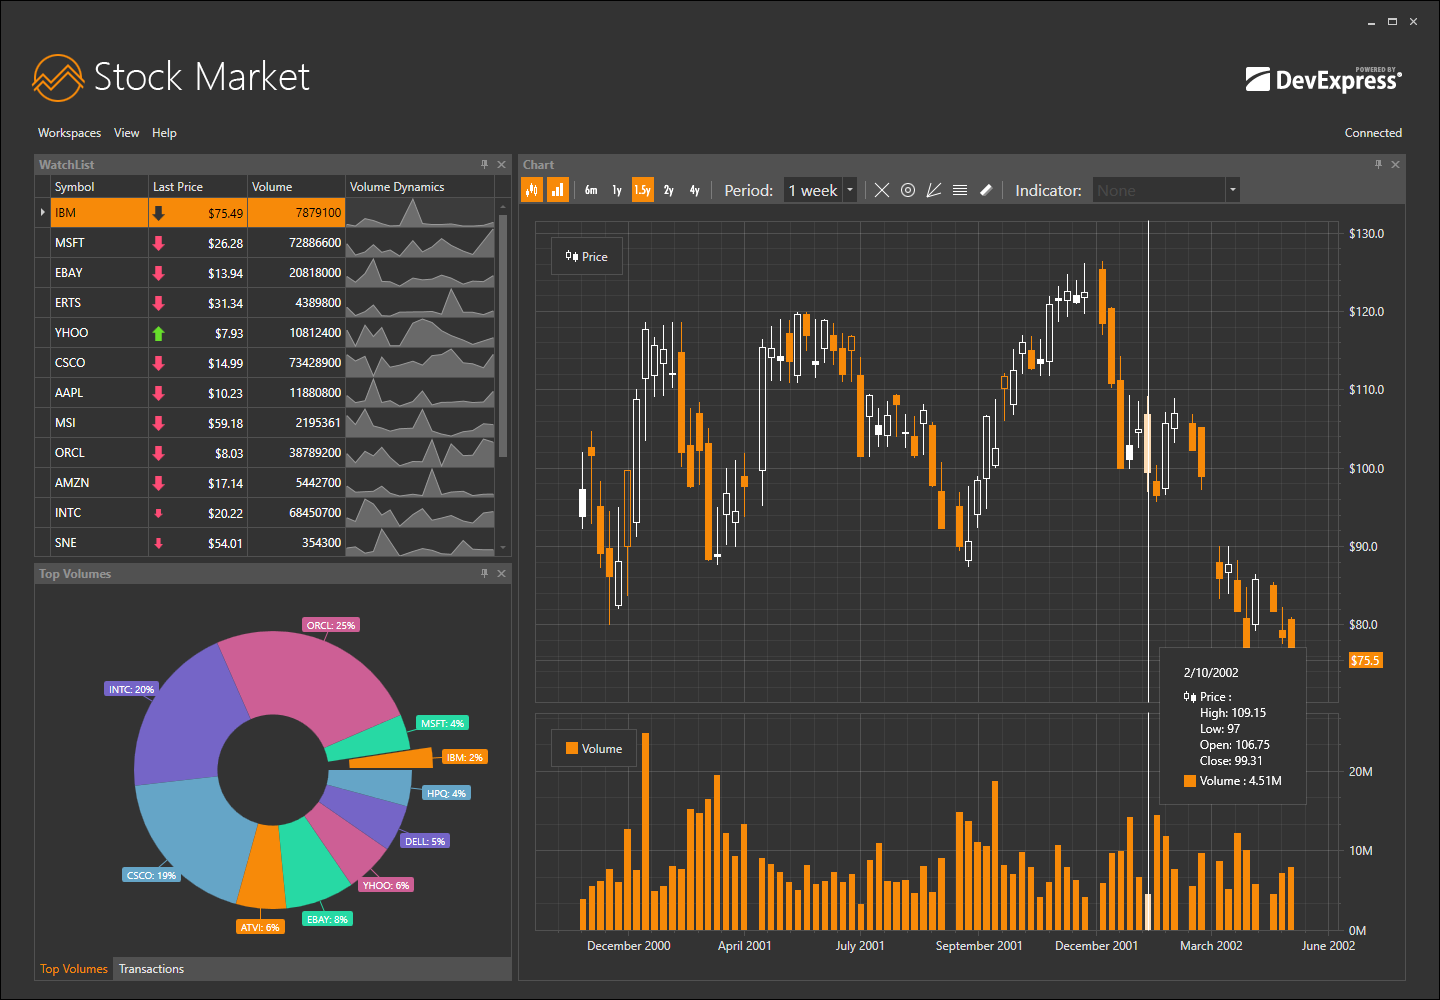 WPF Stock Market App with Financial Charts